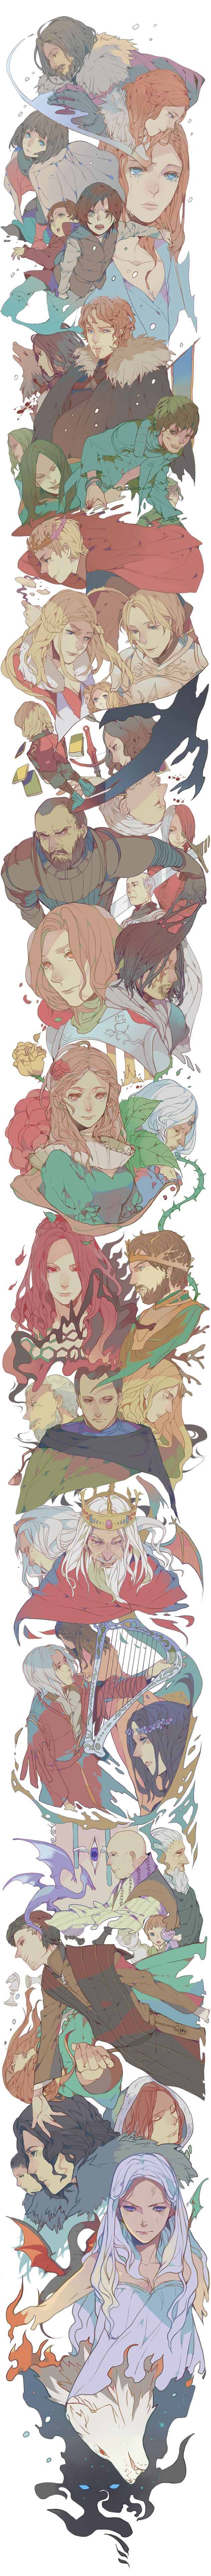 """A Game of Thrones, Manga Anime style (""""Song of Ice and Fire"""") 